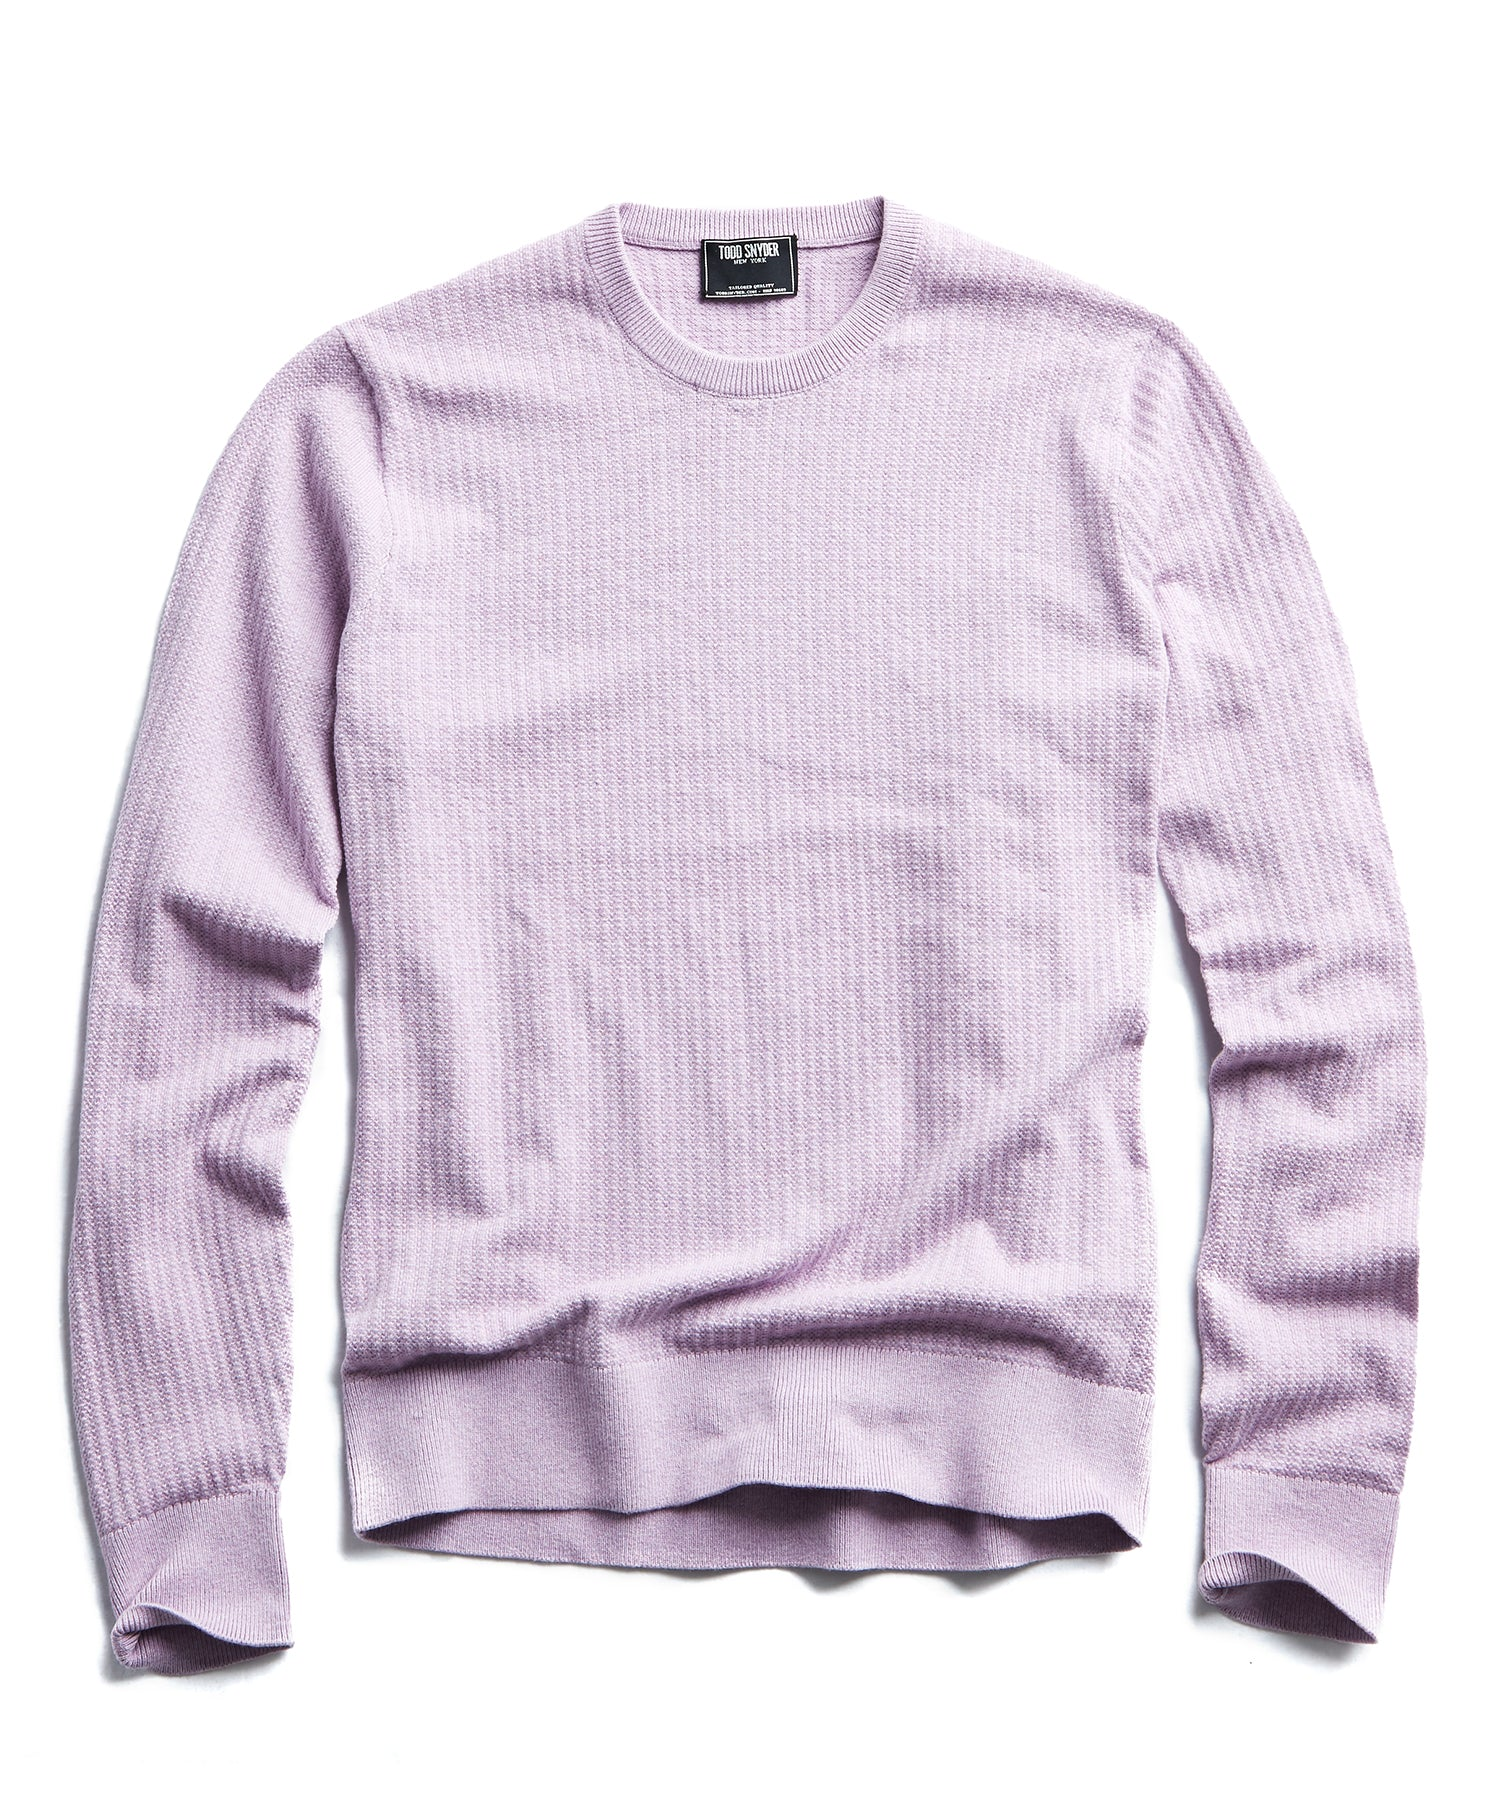 Cotton Crewneck in Purple